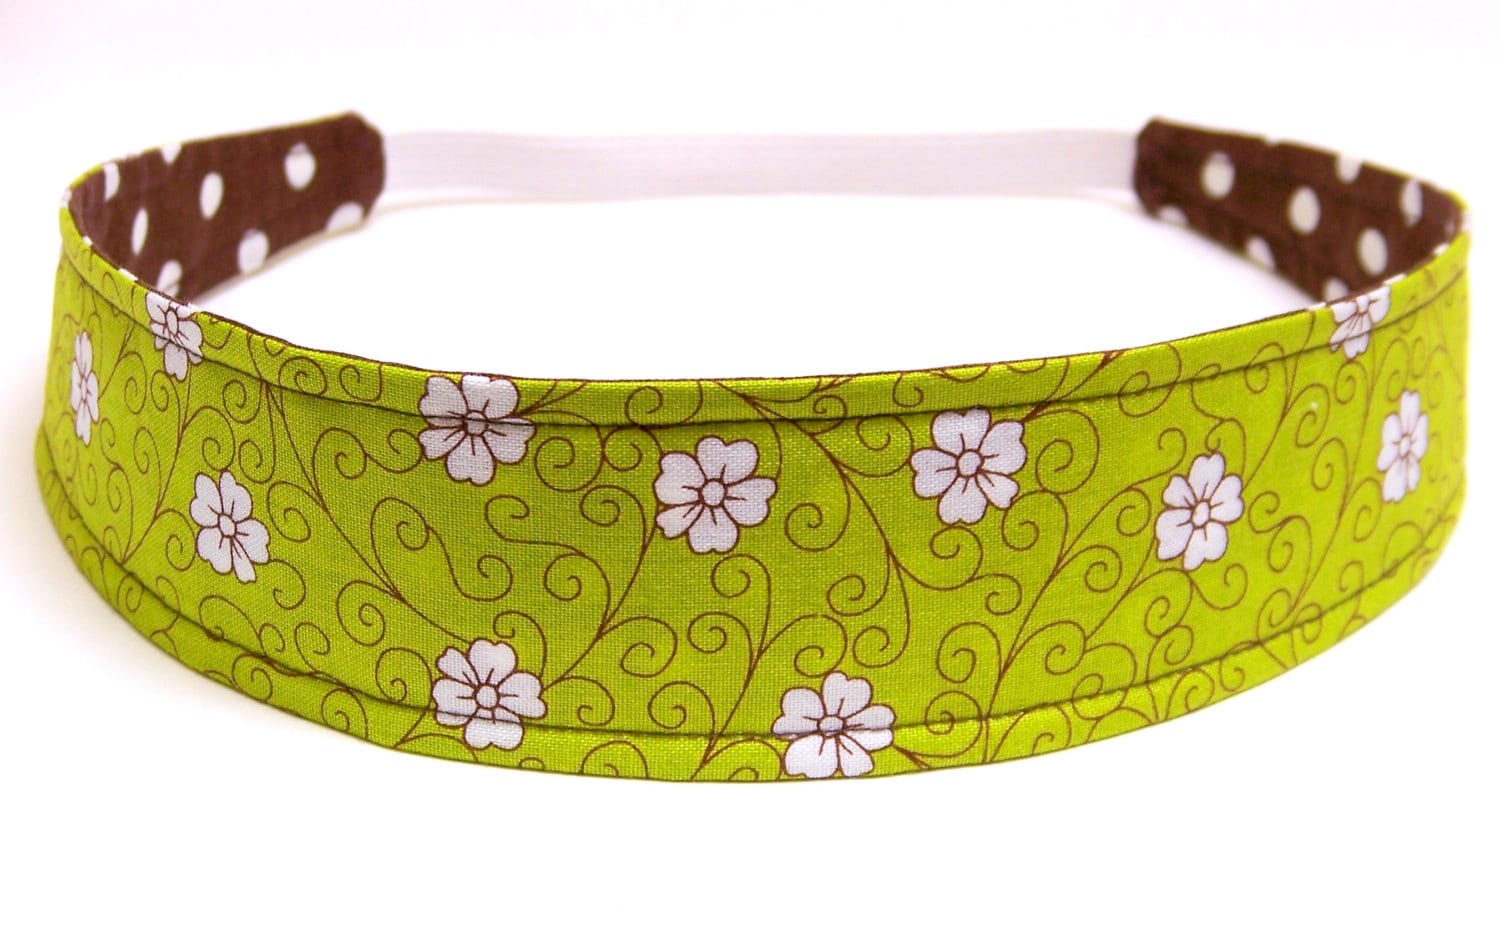 NEW  -  Reversible Fabric Headband   -  ARIANNA  -  Headbands for Women